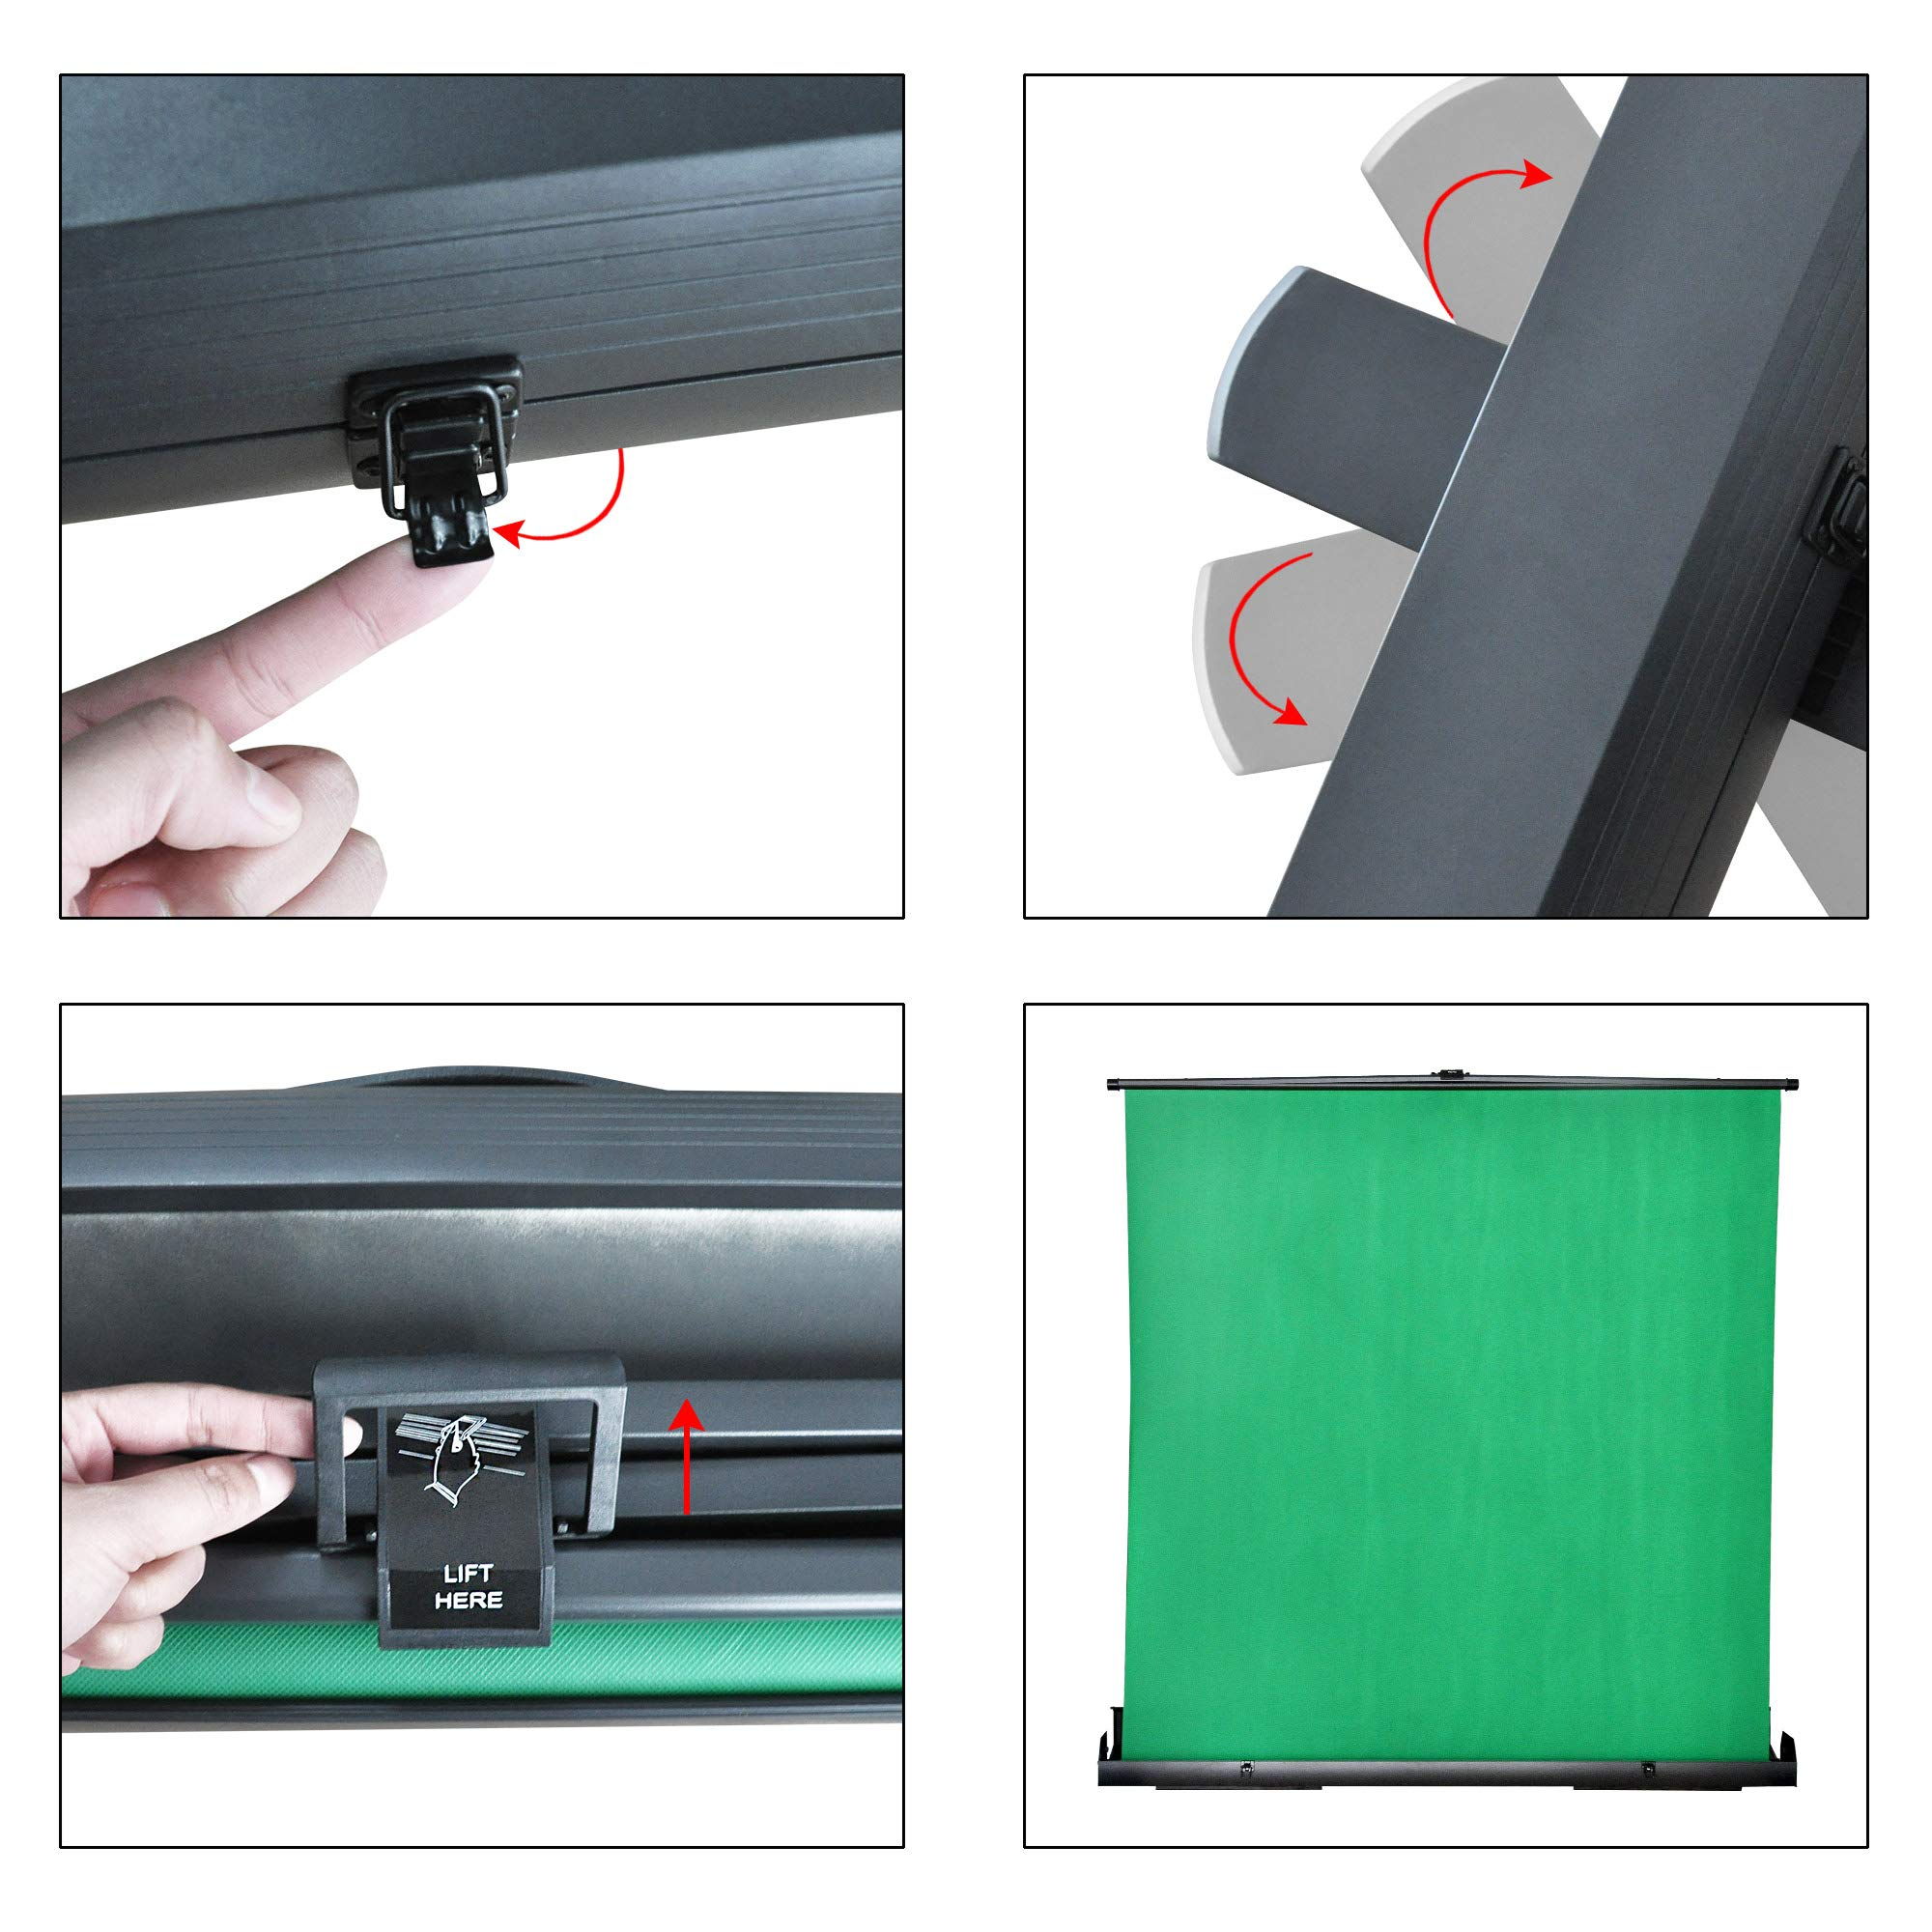 MAXTEX Green Screen, Portable Pull Up Wrinkle-Resistant Greenscreen Background Pull Up Backdrops Green Screen Backdrop Setup Auto-Locking Frame, Solid Safety Aluminium Base by MAXTEX (Image #5)